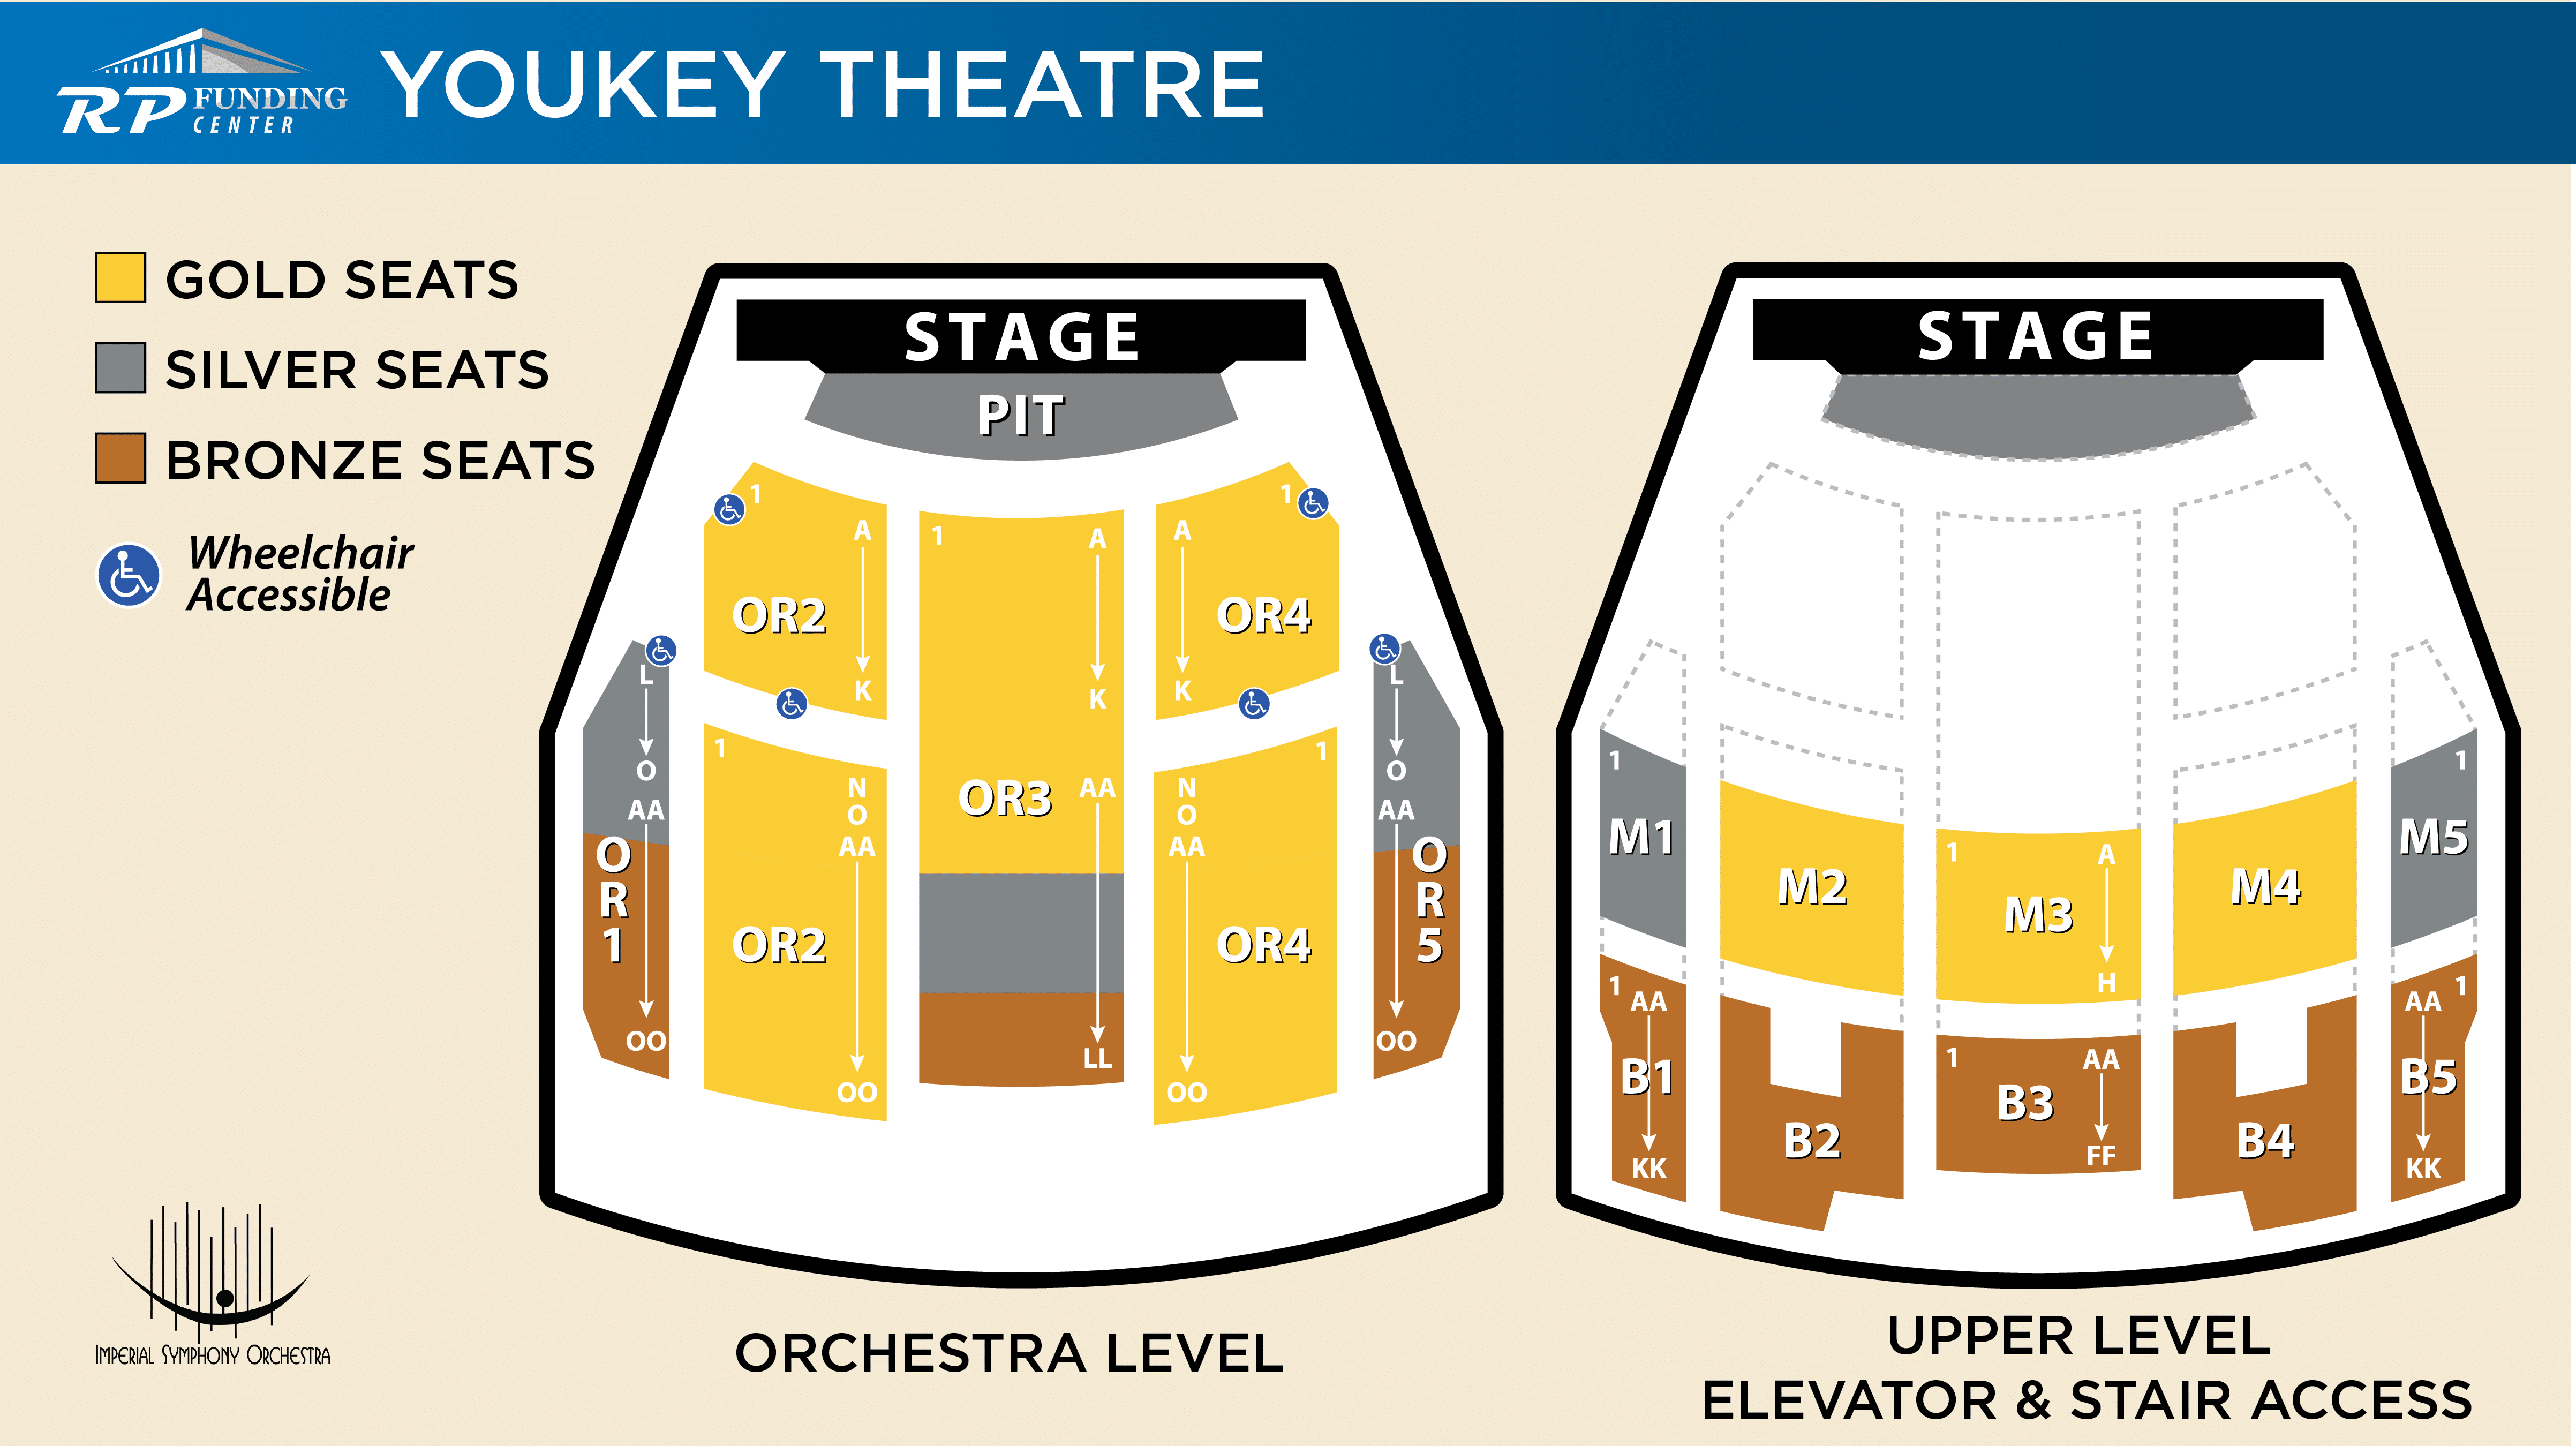 View Seating Map Here